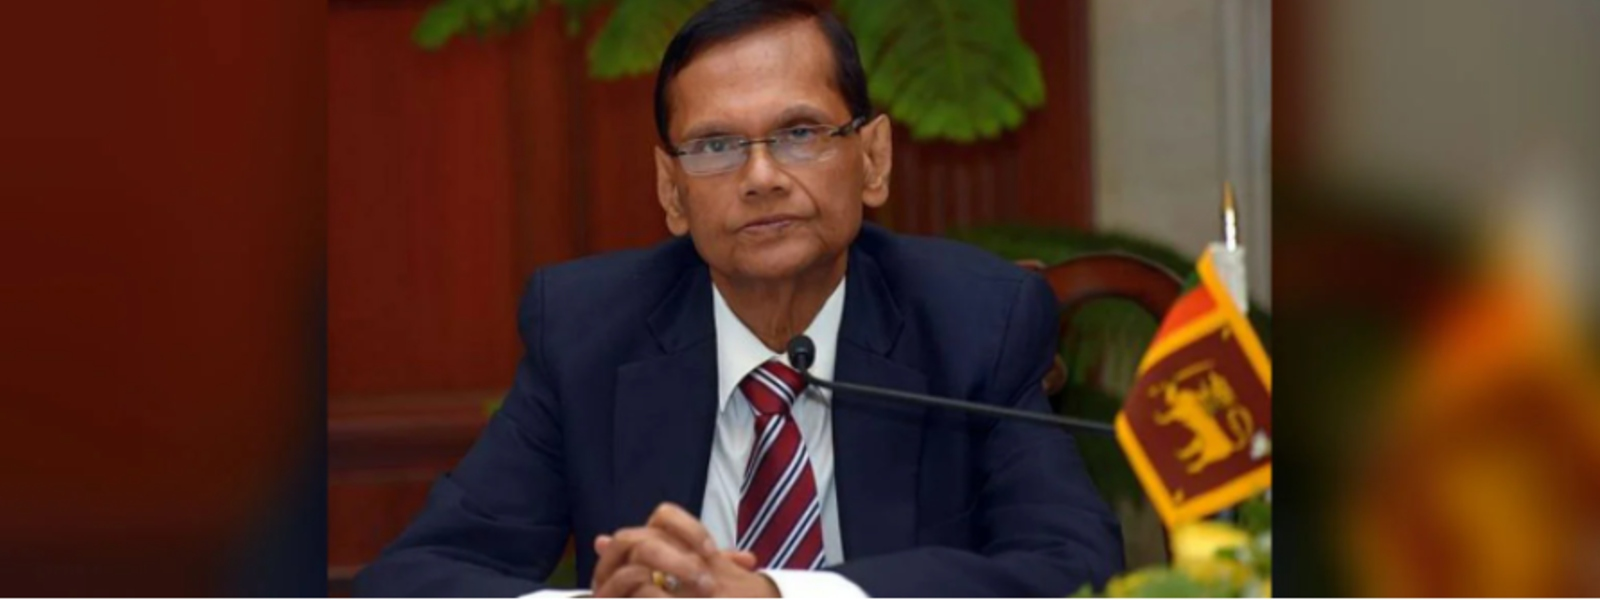 Special commission to mete out punishments : Peiris